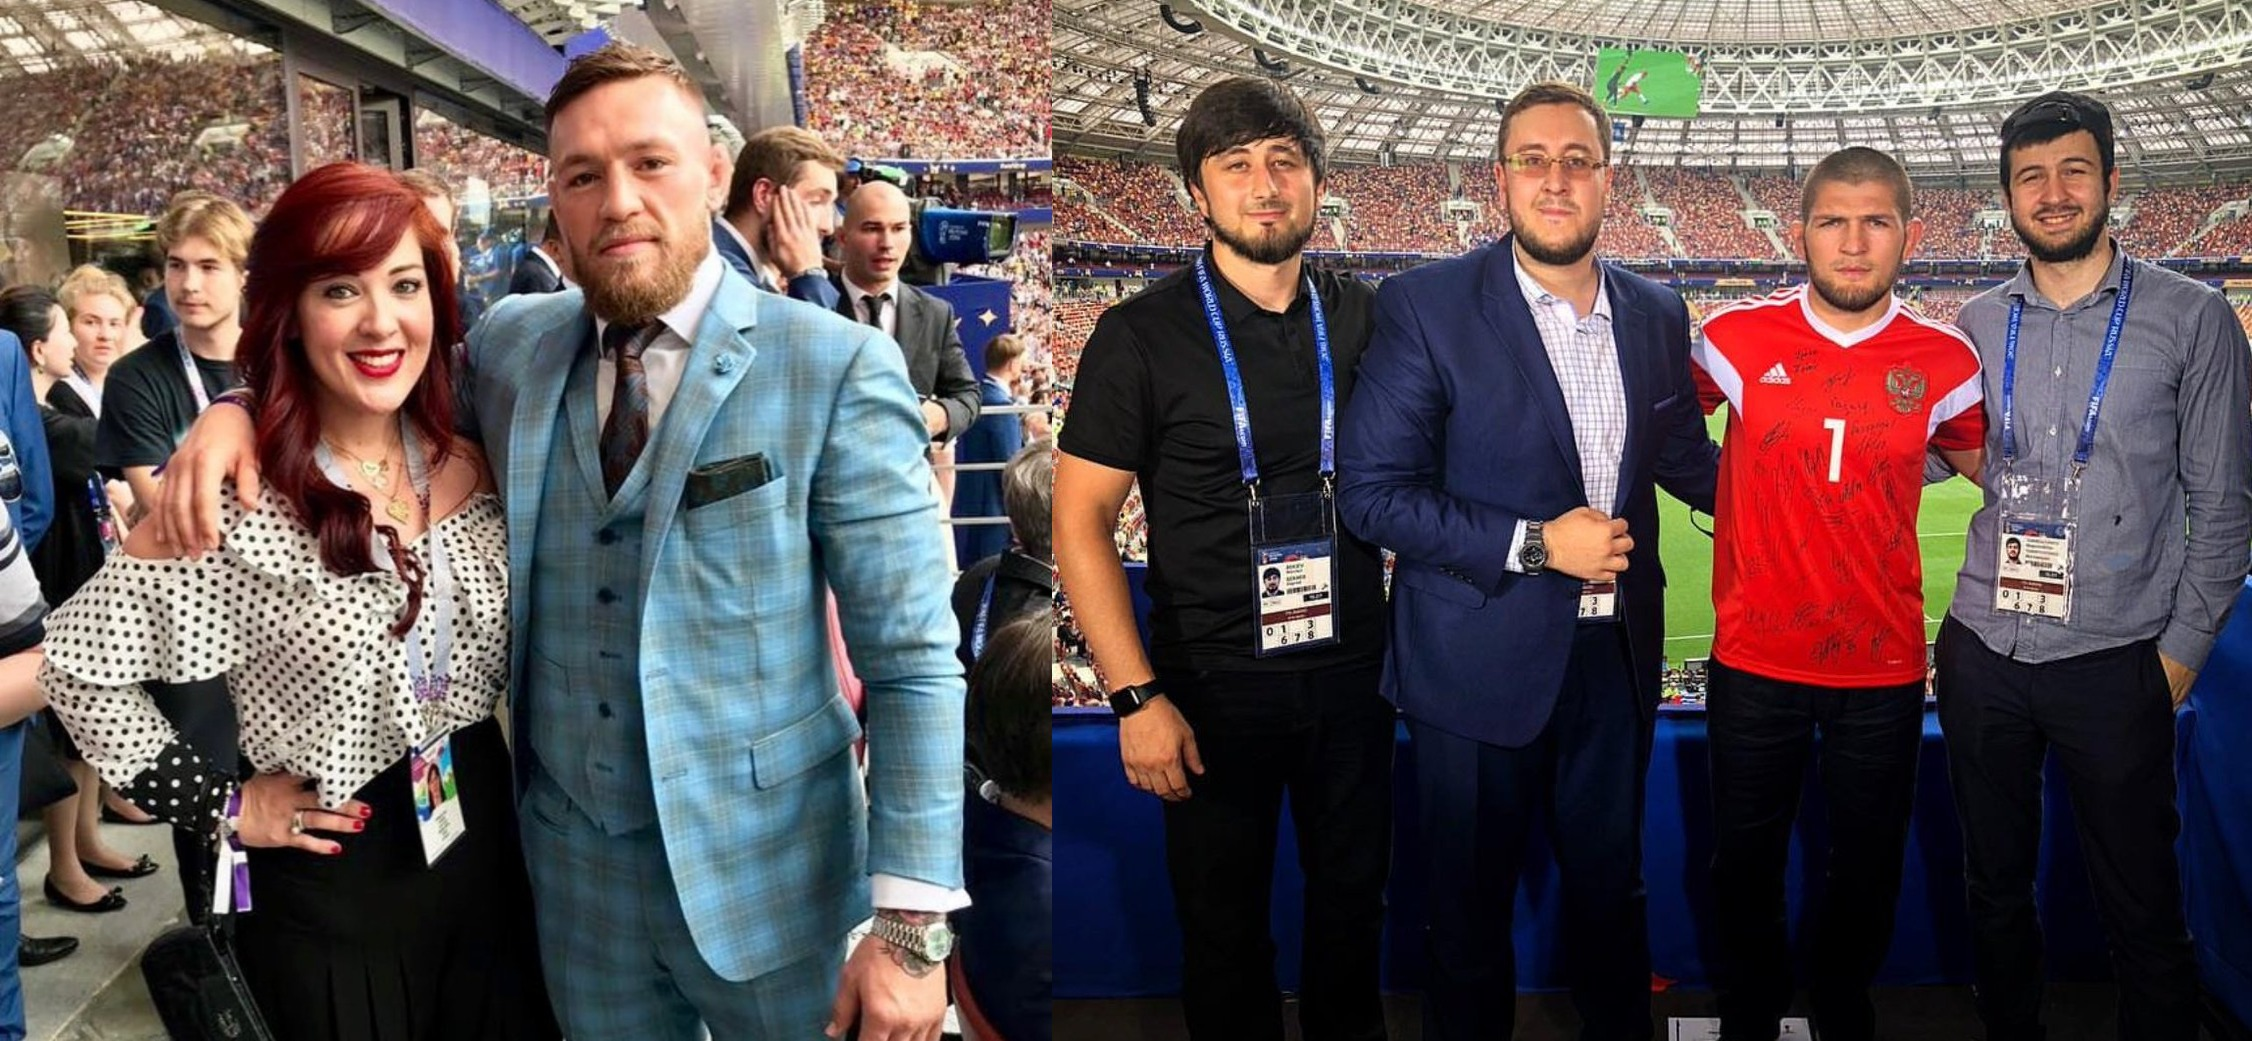 UFC: Conor McGreror and Khabib Nurmagomedov are both in Moscow to watch the world cup finals - FIFA